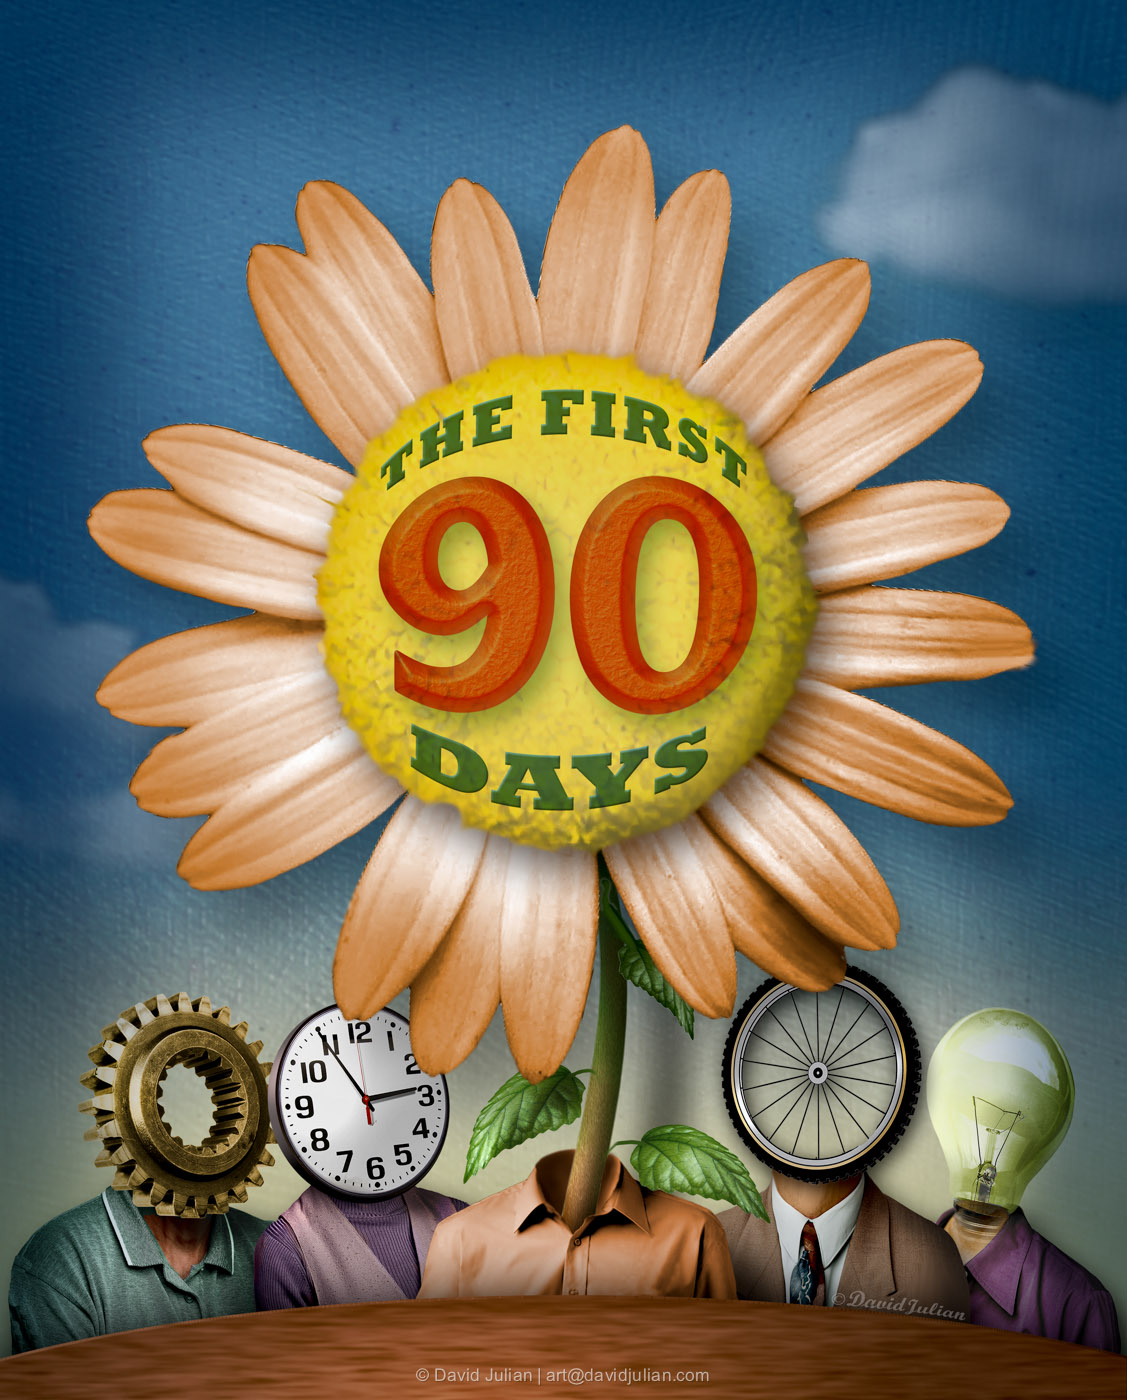 asbj_first90days_cover.jpg